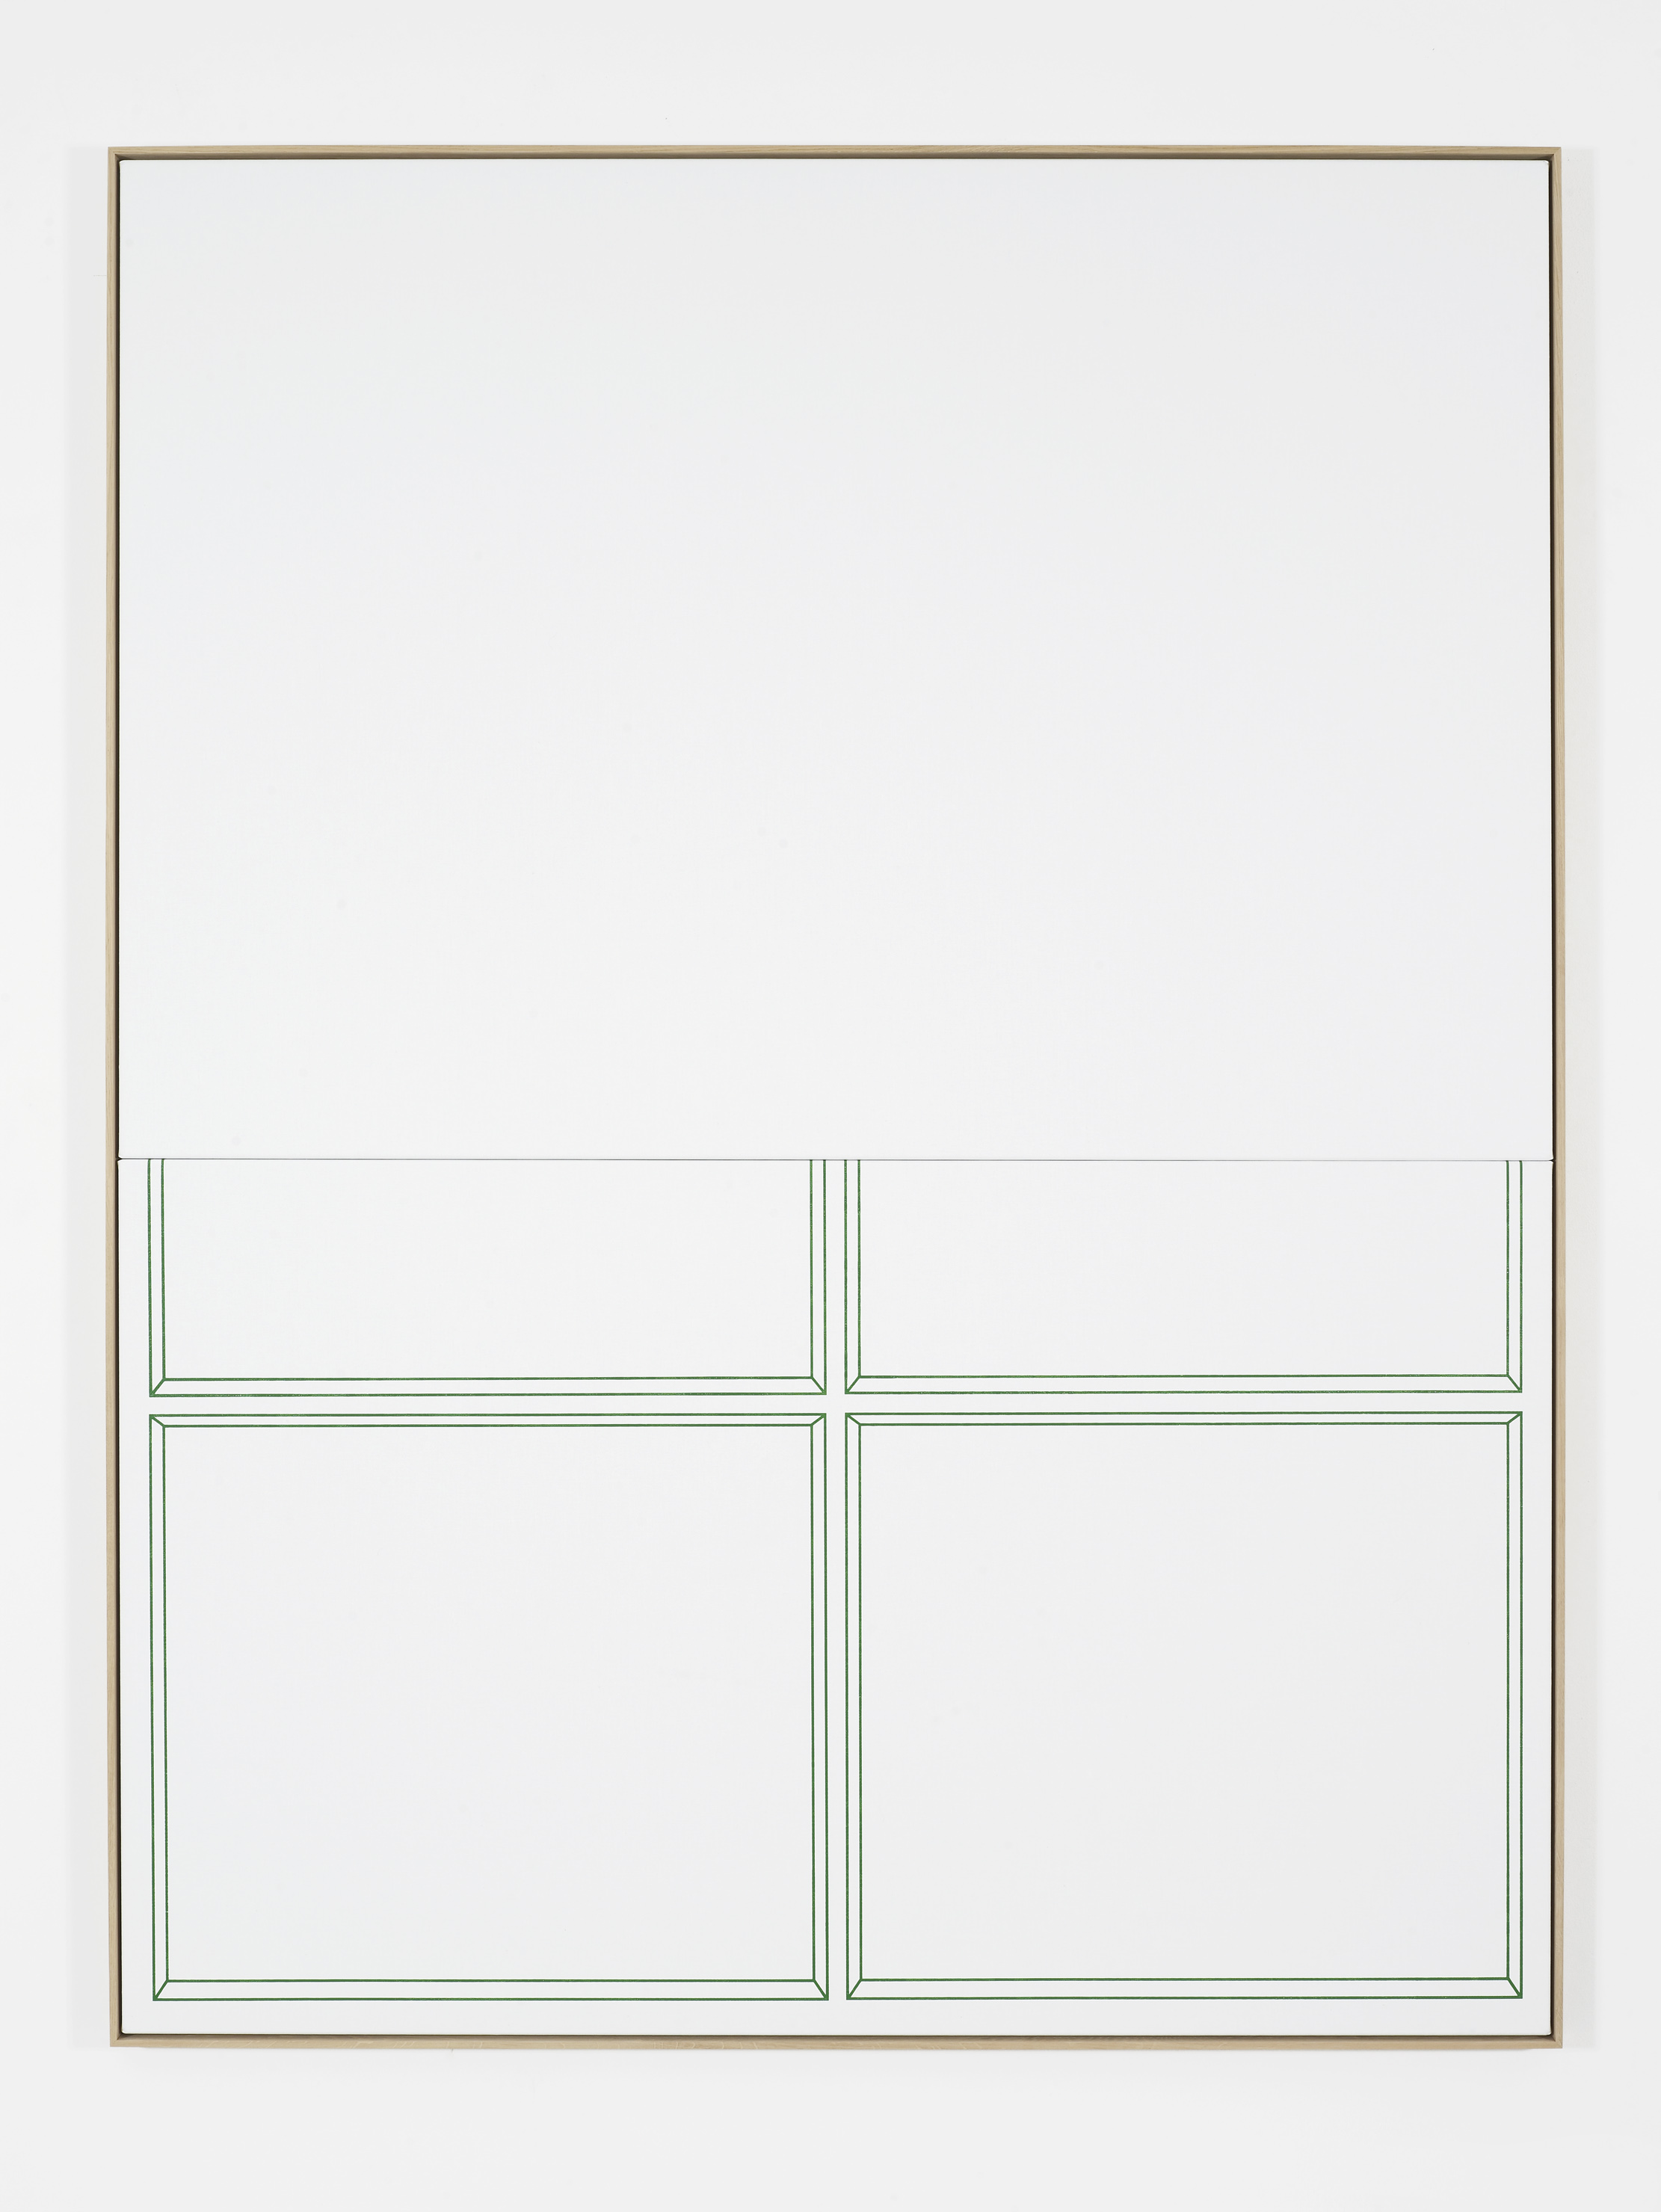 Blind (Window), 2016 Silkscreen on linen, oak frame 215 x 164 cm 84 5/8 x 64 5/8 ins. False Friends Falsche Freunde , Oliver Osborne